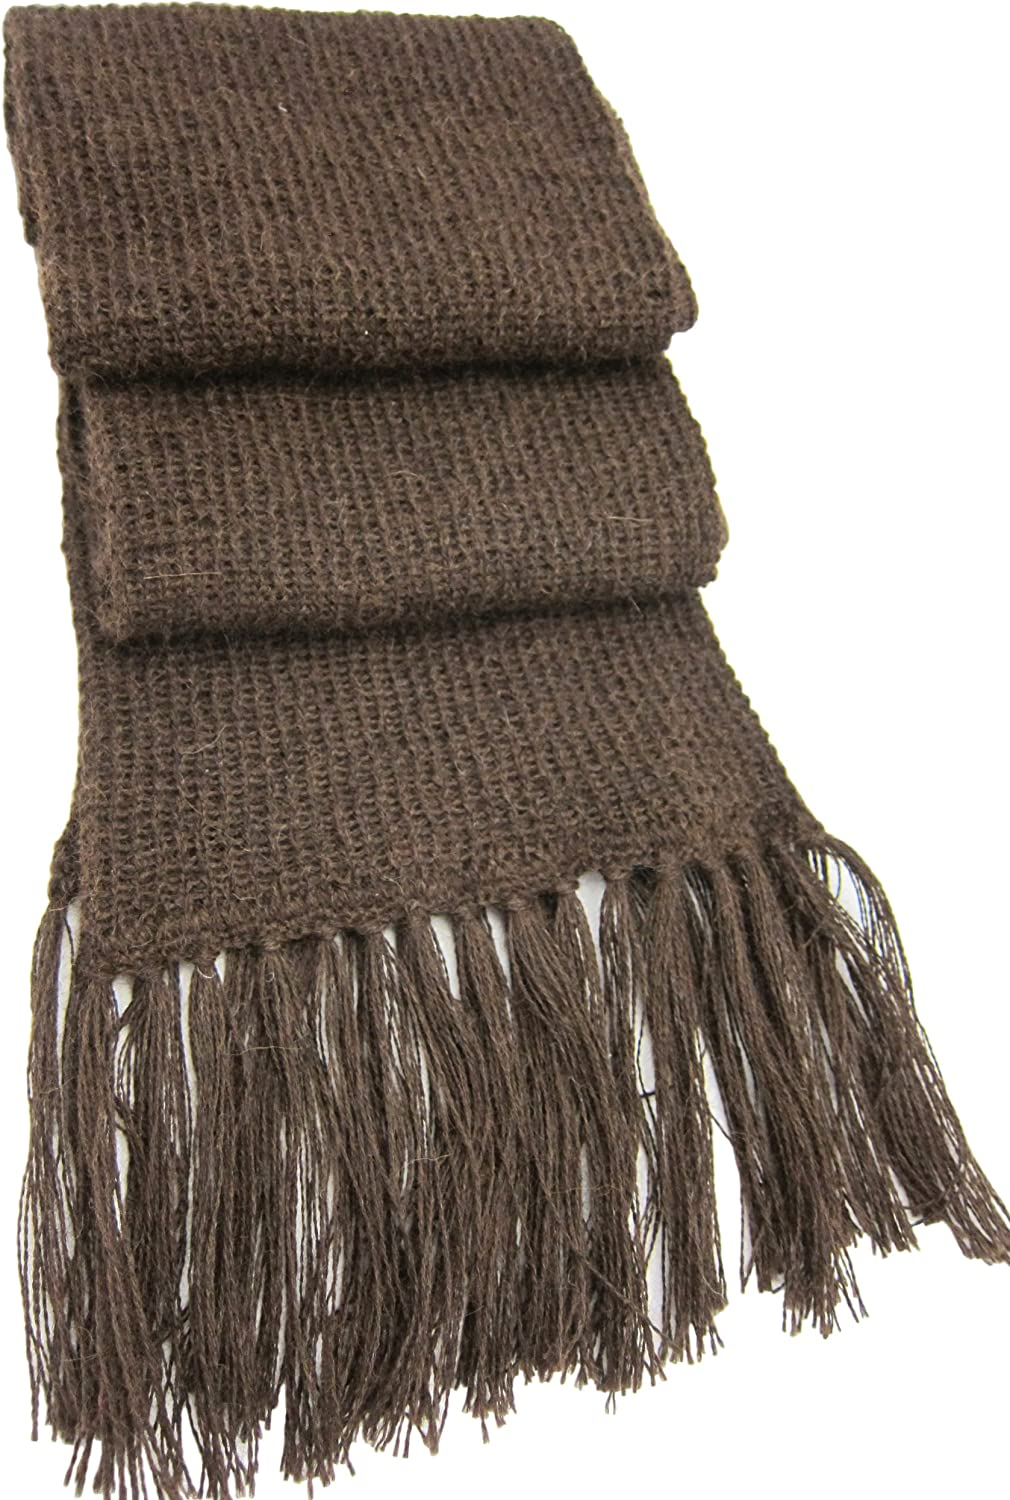 Handmade PURE ALPACA Winter Scarf - Made to Order Just for Men